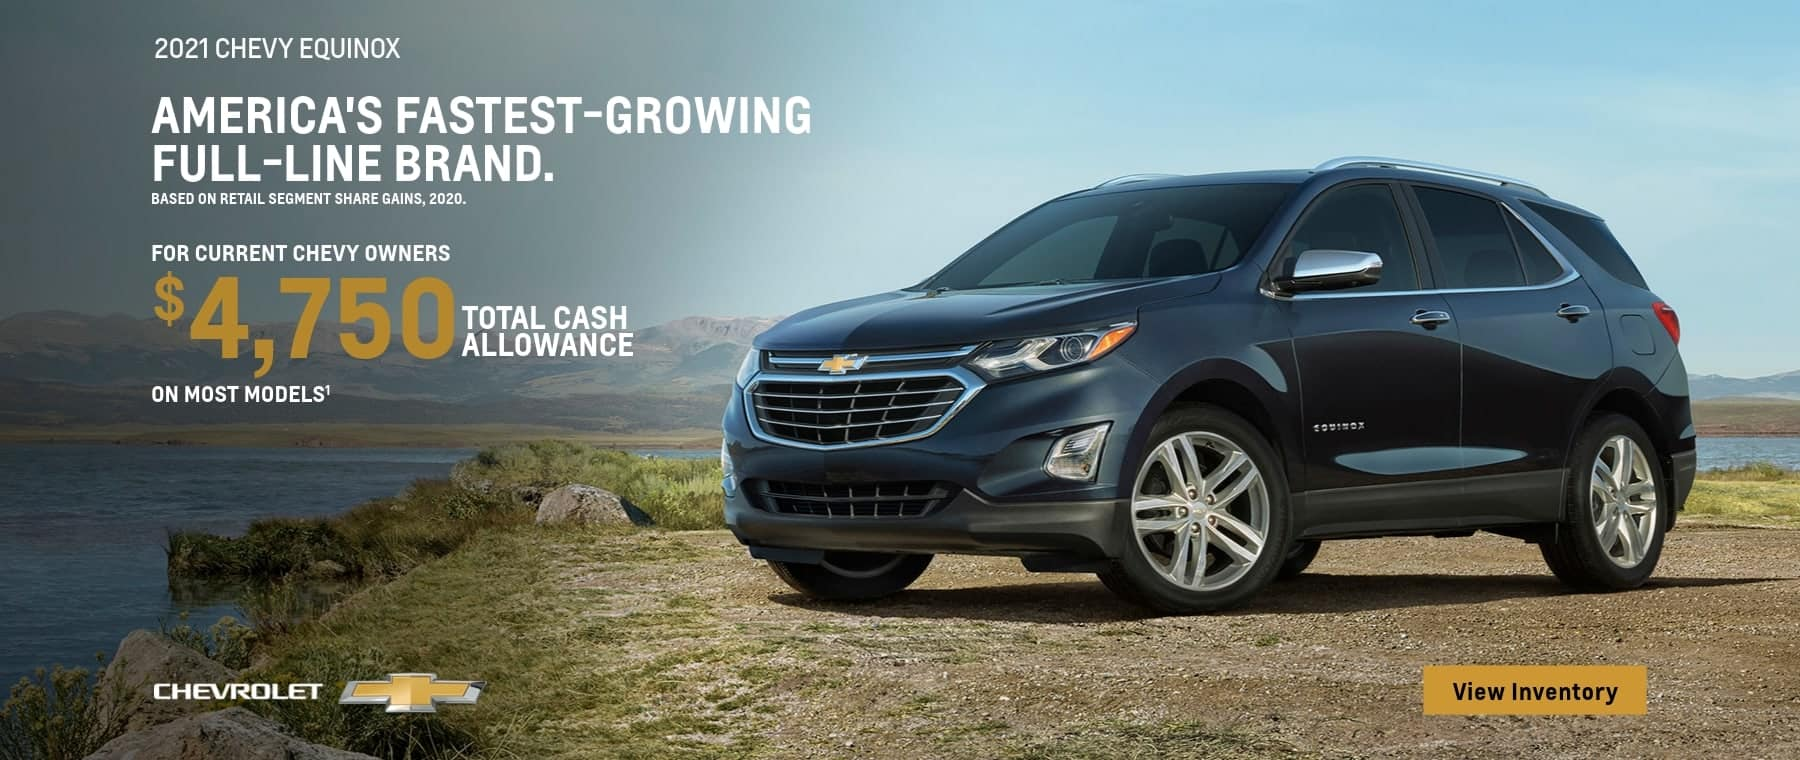 2021 Chevy Equinox For Current Chevy Owners $4,750 Total Cash Allowance on most models.